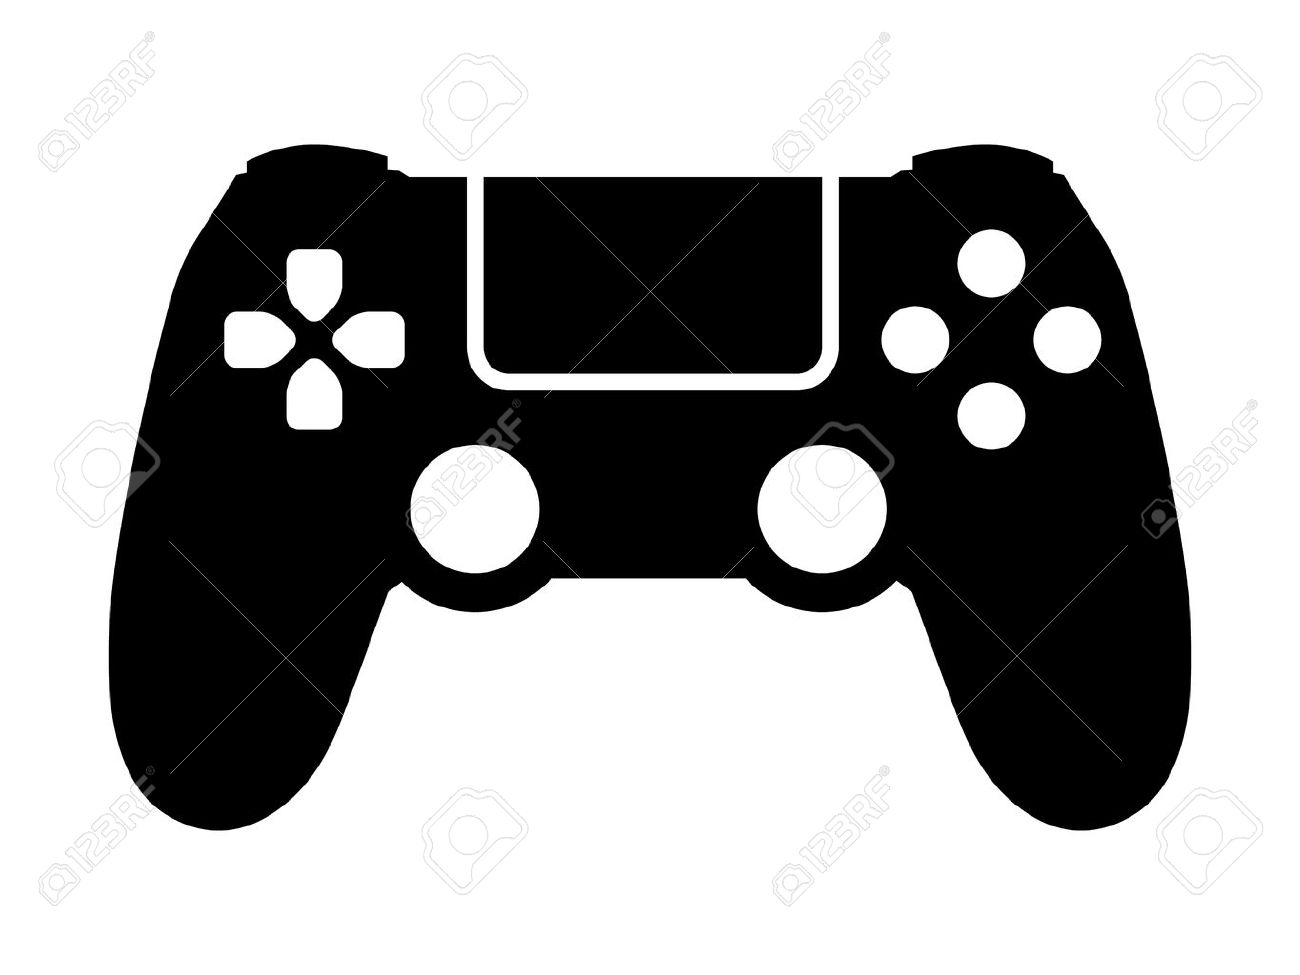 Gaming controller clipart.